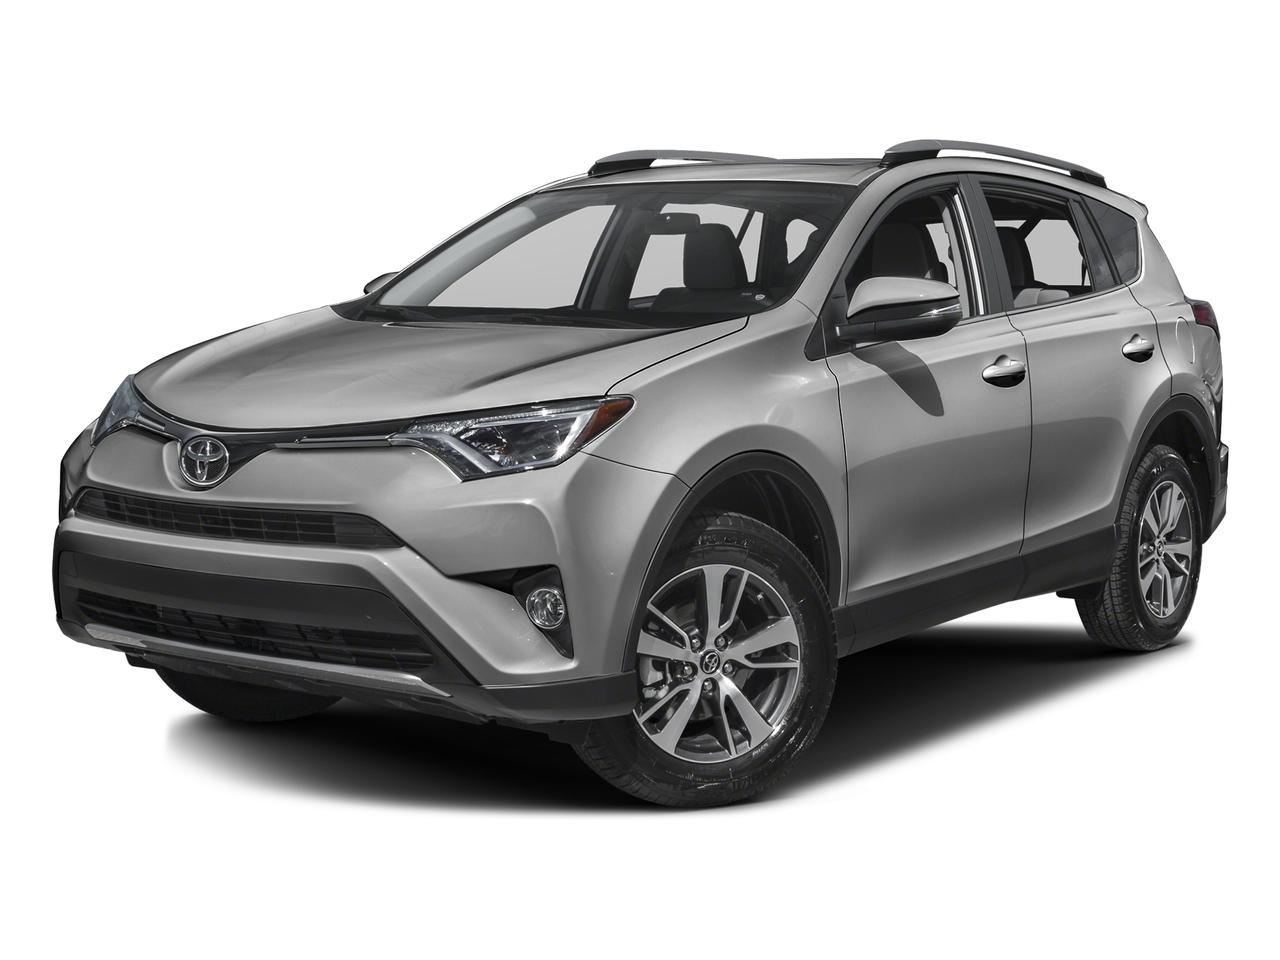 2017 Toyota RAV4 Vehicle Photo in Prince Frederick, MD 20678